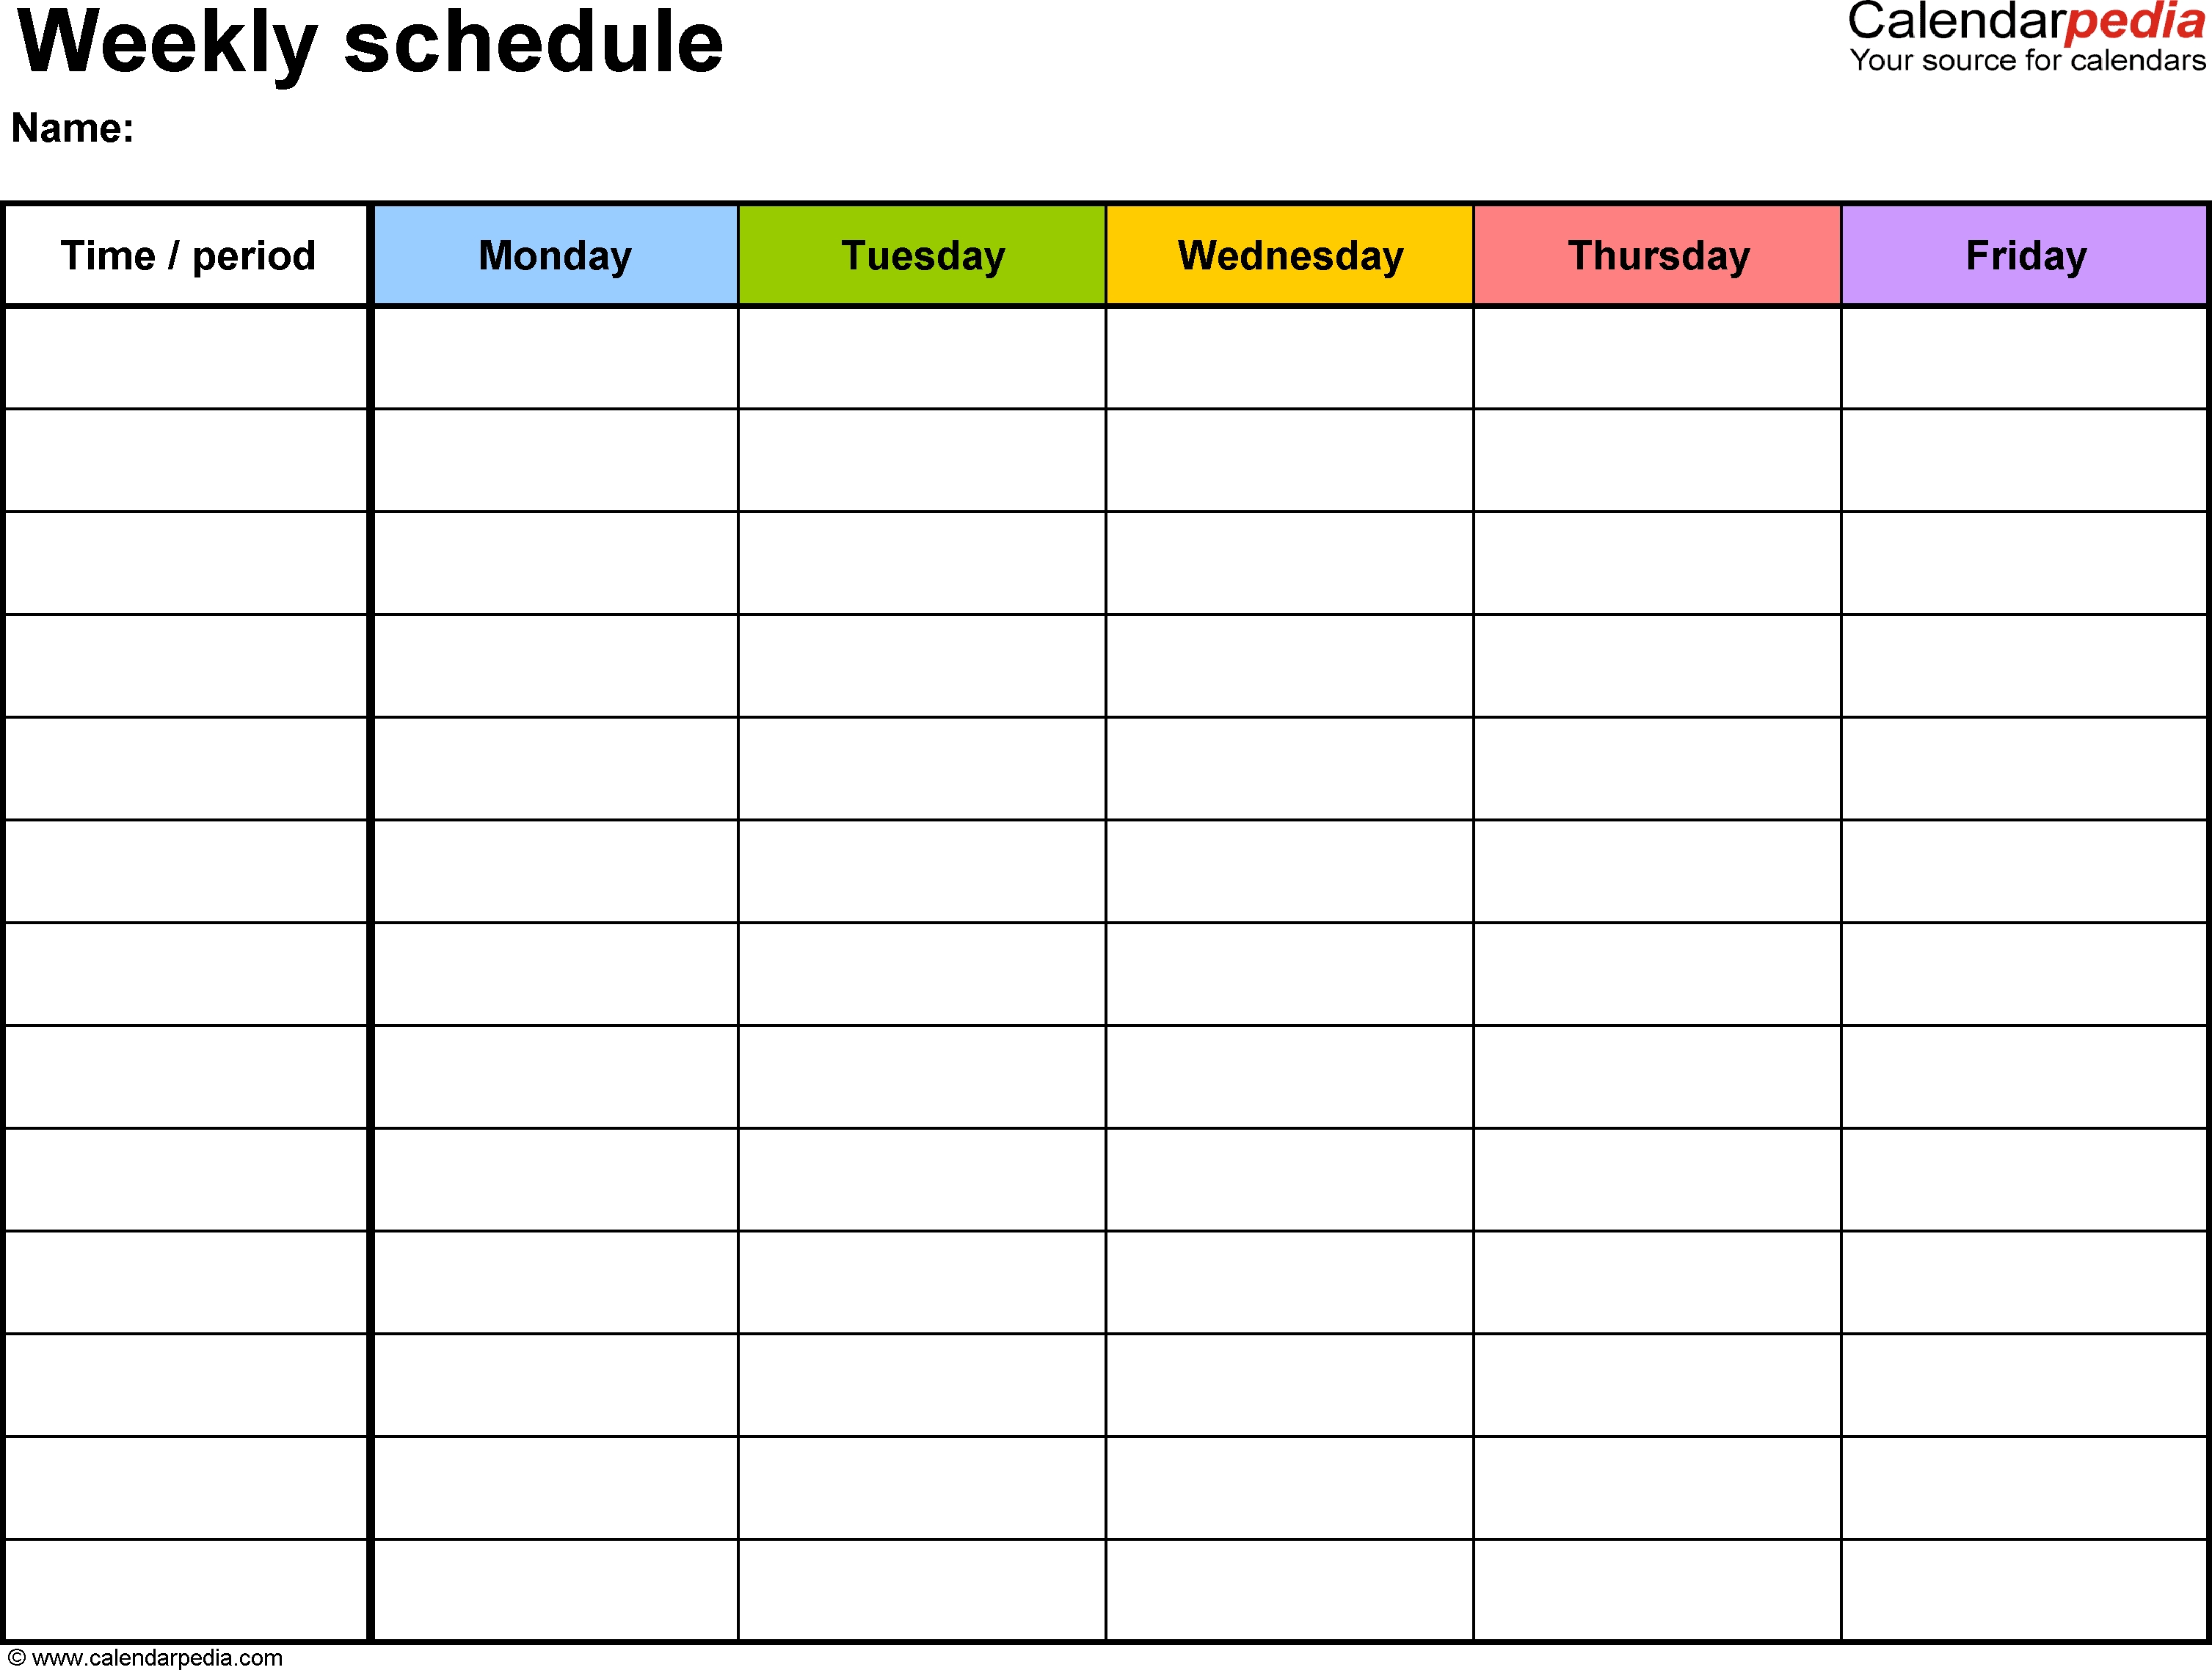 Free Weekly Schedule Templates For Word - 18 Templates with regard to Monday Through Friday Schedule Template Free